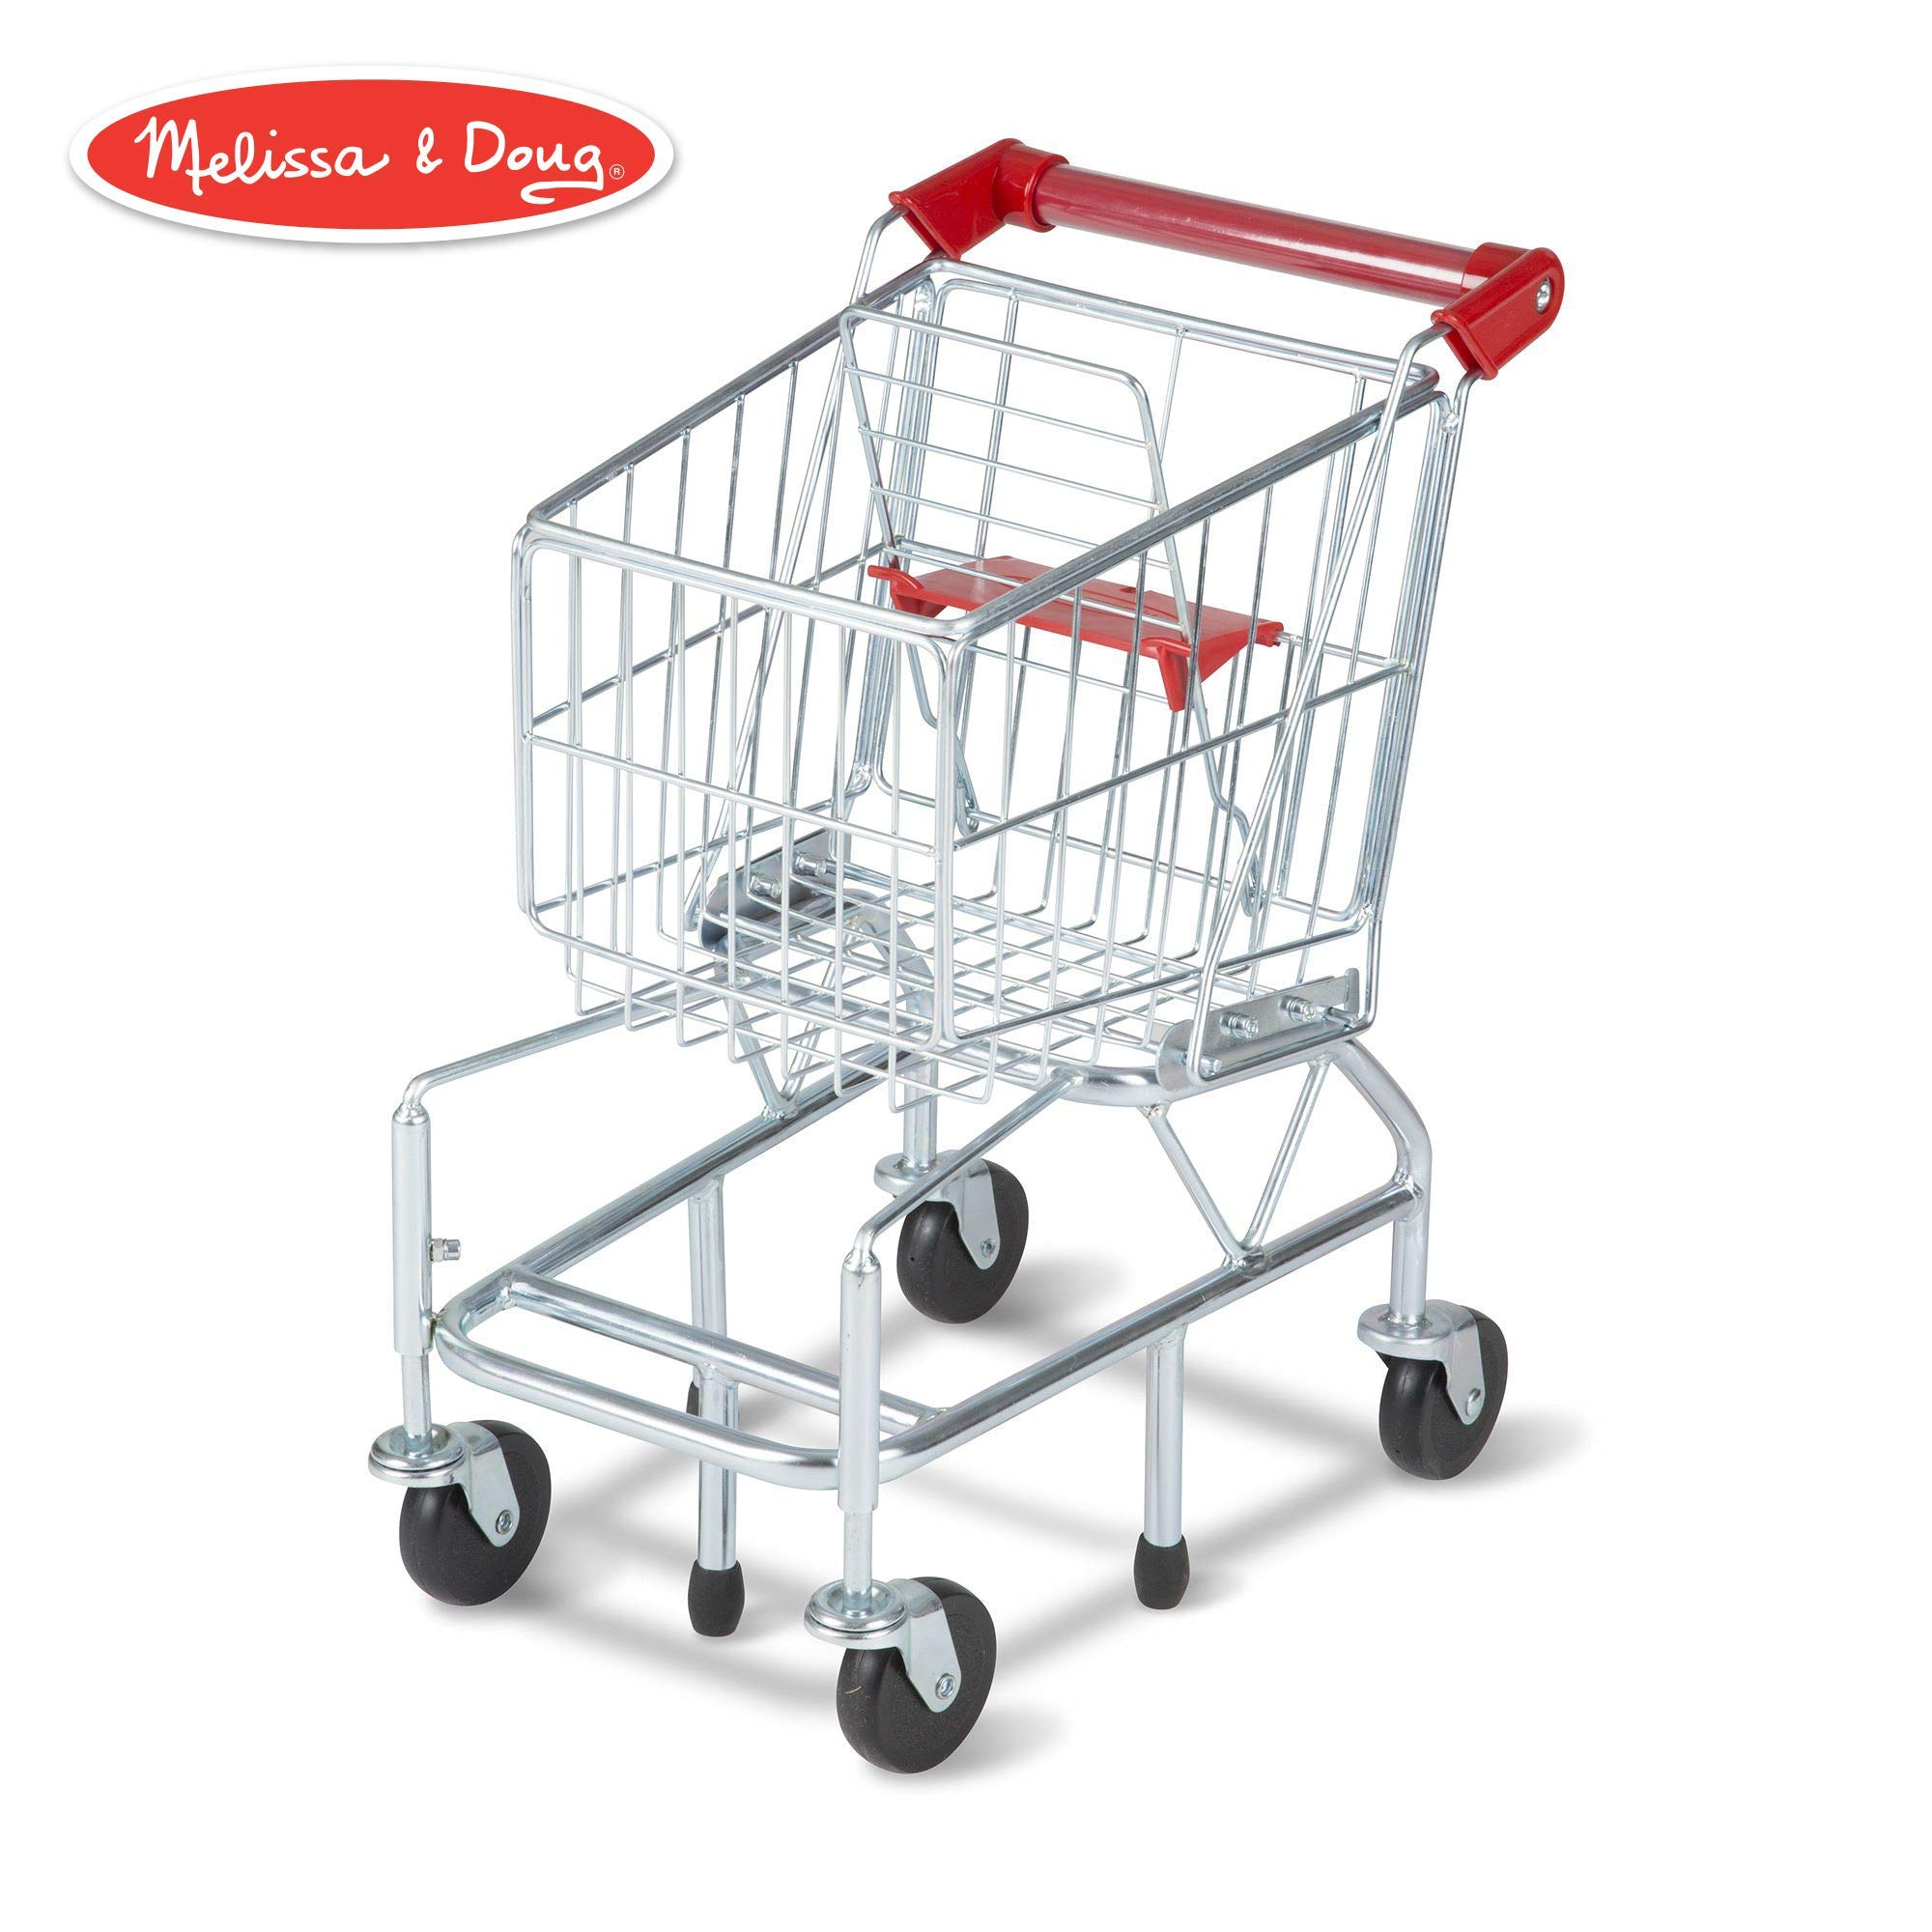 Melissa & Doug Toy Shopping Cart with Sturdy Metal Frame, Play Sets & Kitchens, Heavy-Gauge Steel Construction, 23.25'' H x 11.75'' W x 15'' L (Renewed)